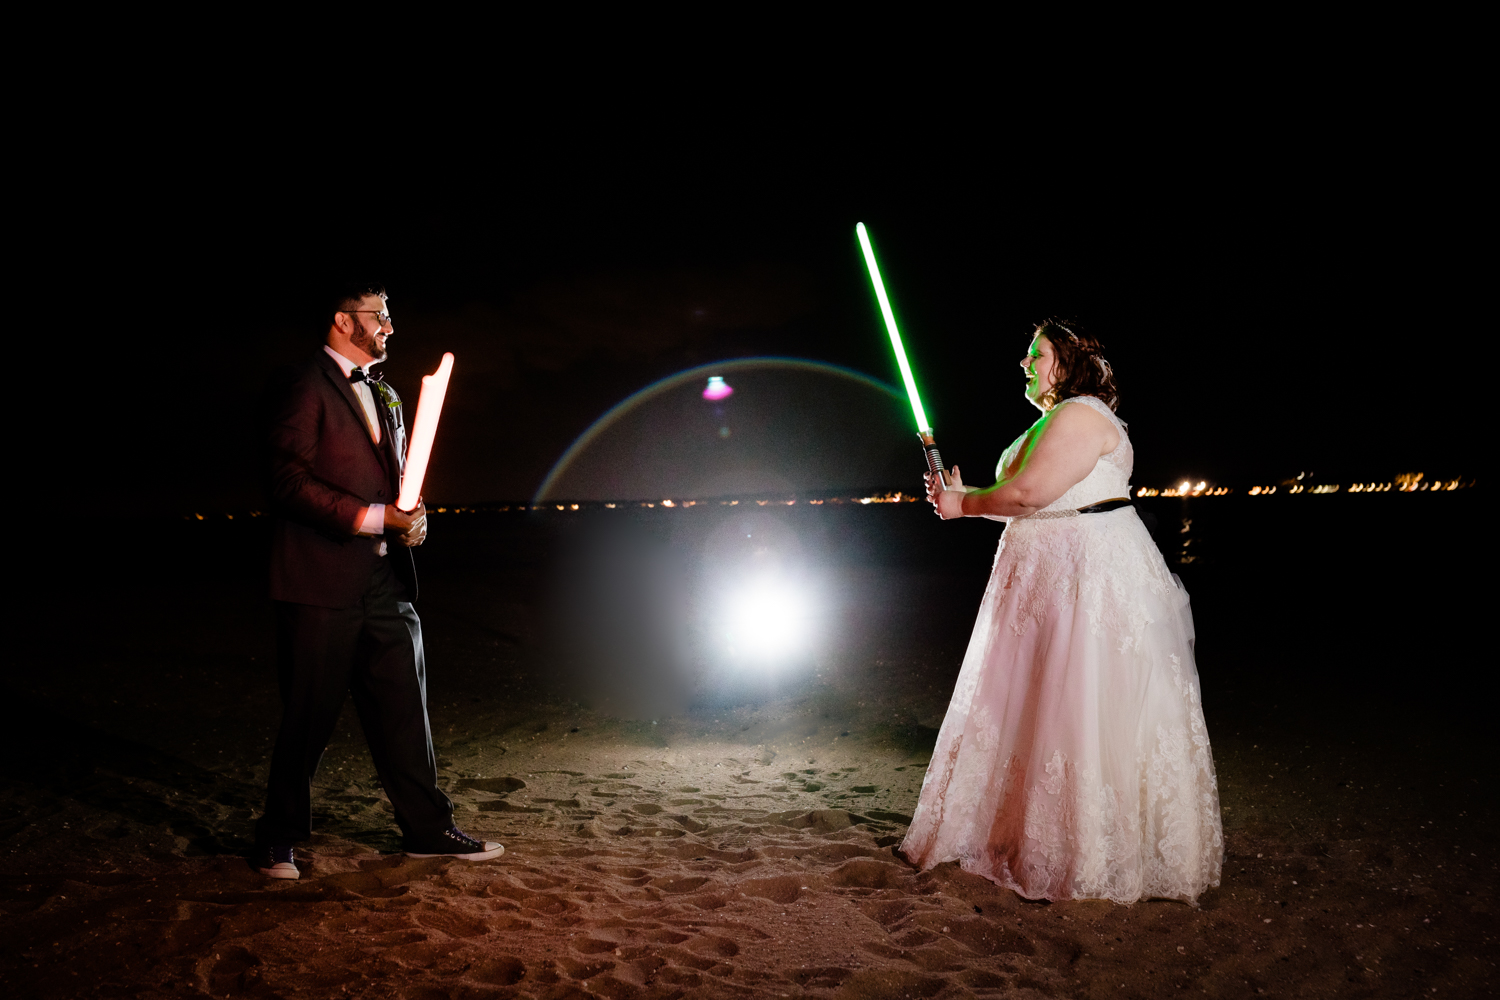 Bride and groom fighting with lightsabers on beach on wedding day